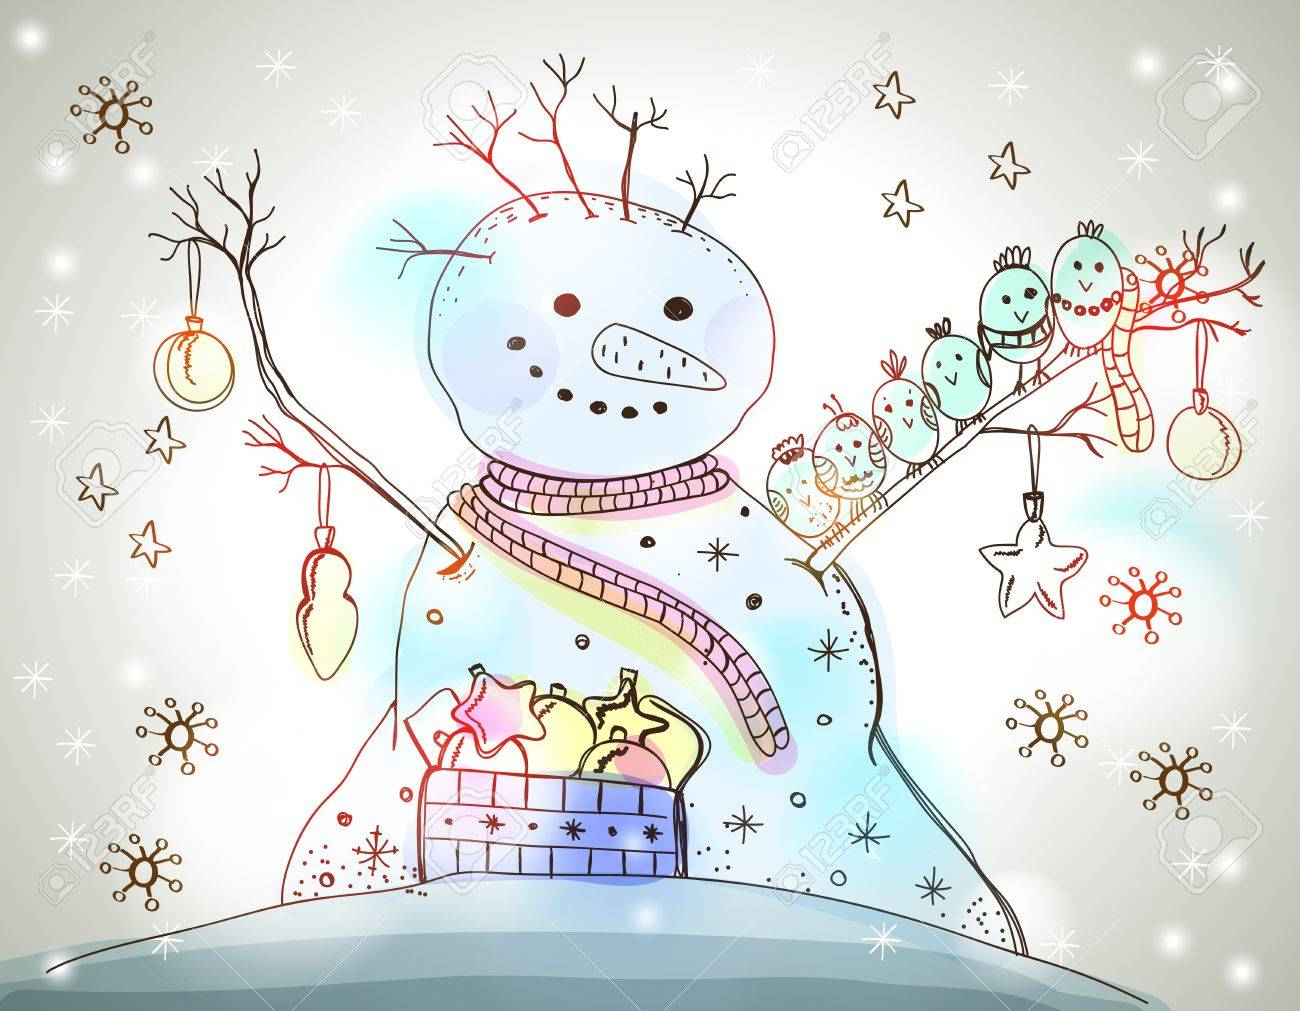 Christmas Card for xmas design with birds, gift and hand drawn snowman Stock Vector - 20361538